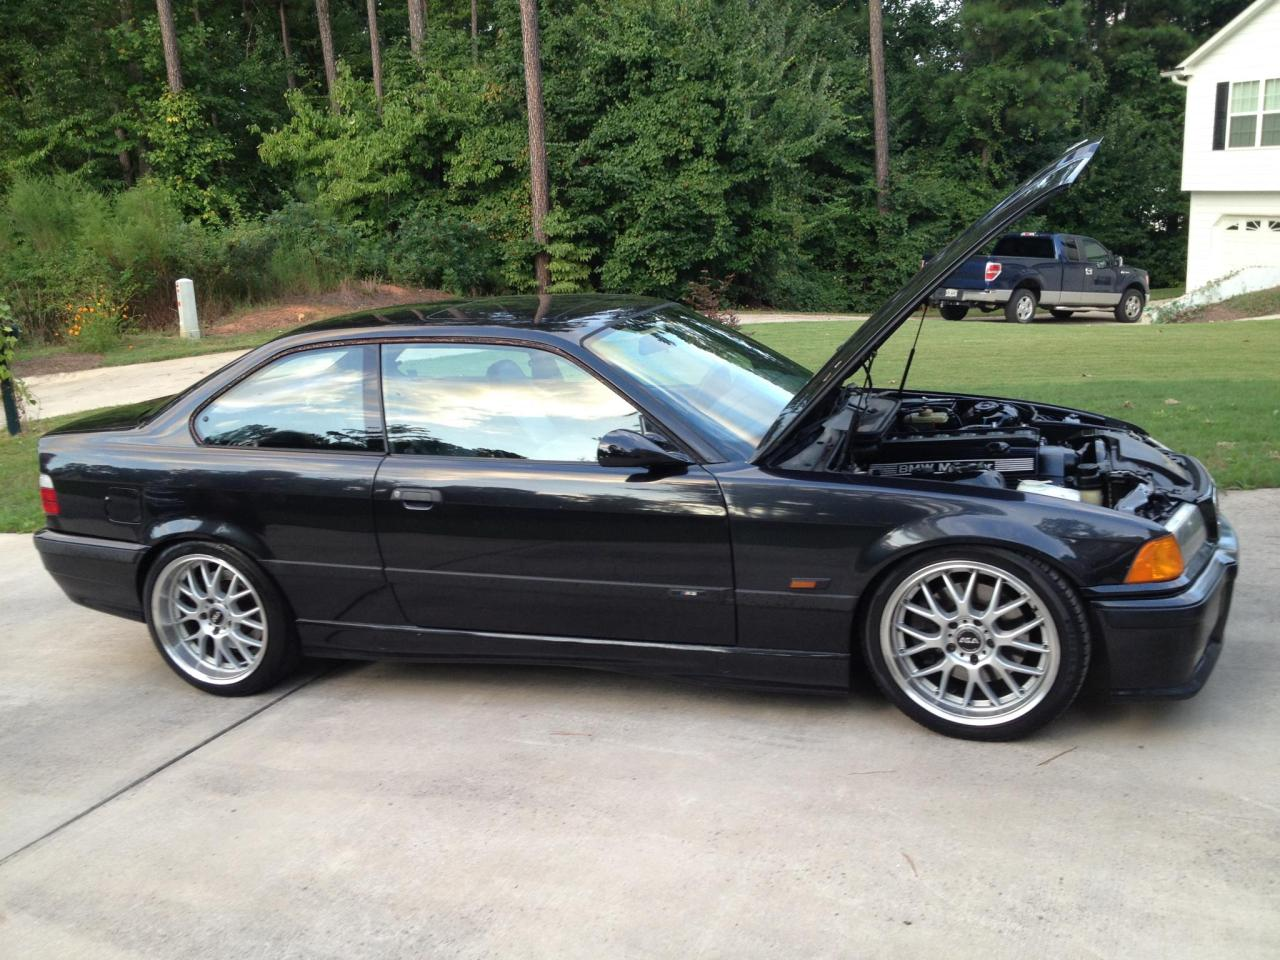 Nickssmirkingrevenge: My '95 e36 M3 with a s52 swap I assume the big gain in horsepower was reason enough for the swap? This car looks nice and clean. Good work and thanks for submitting it! E36s from the past